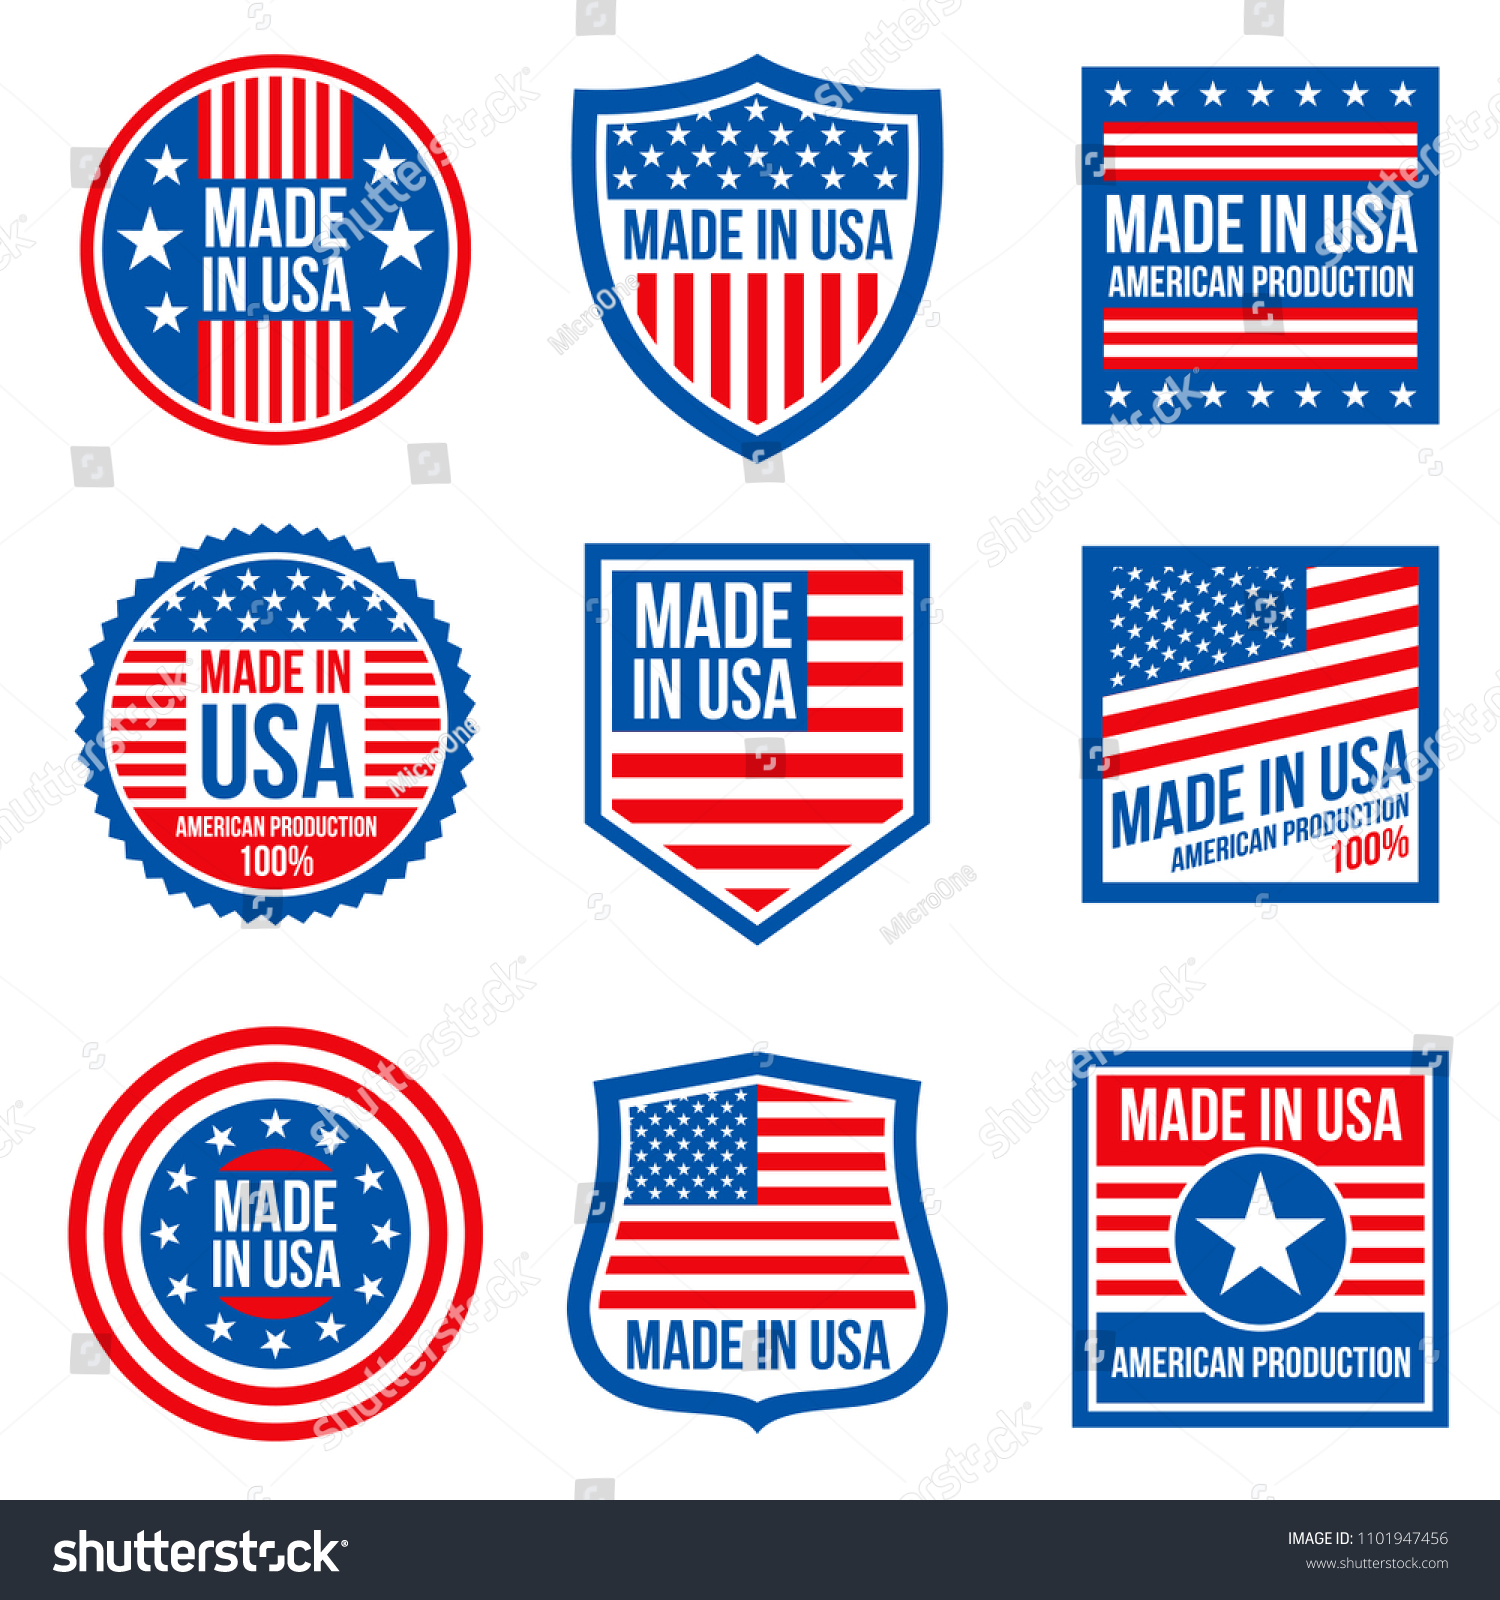 Vintage Made Usa Badges American Patriotic Stock Illustration